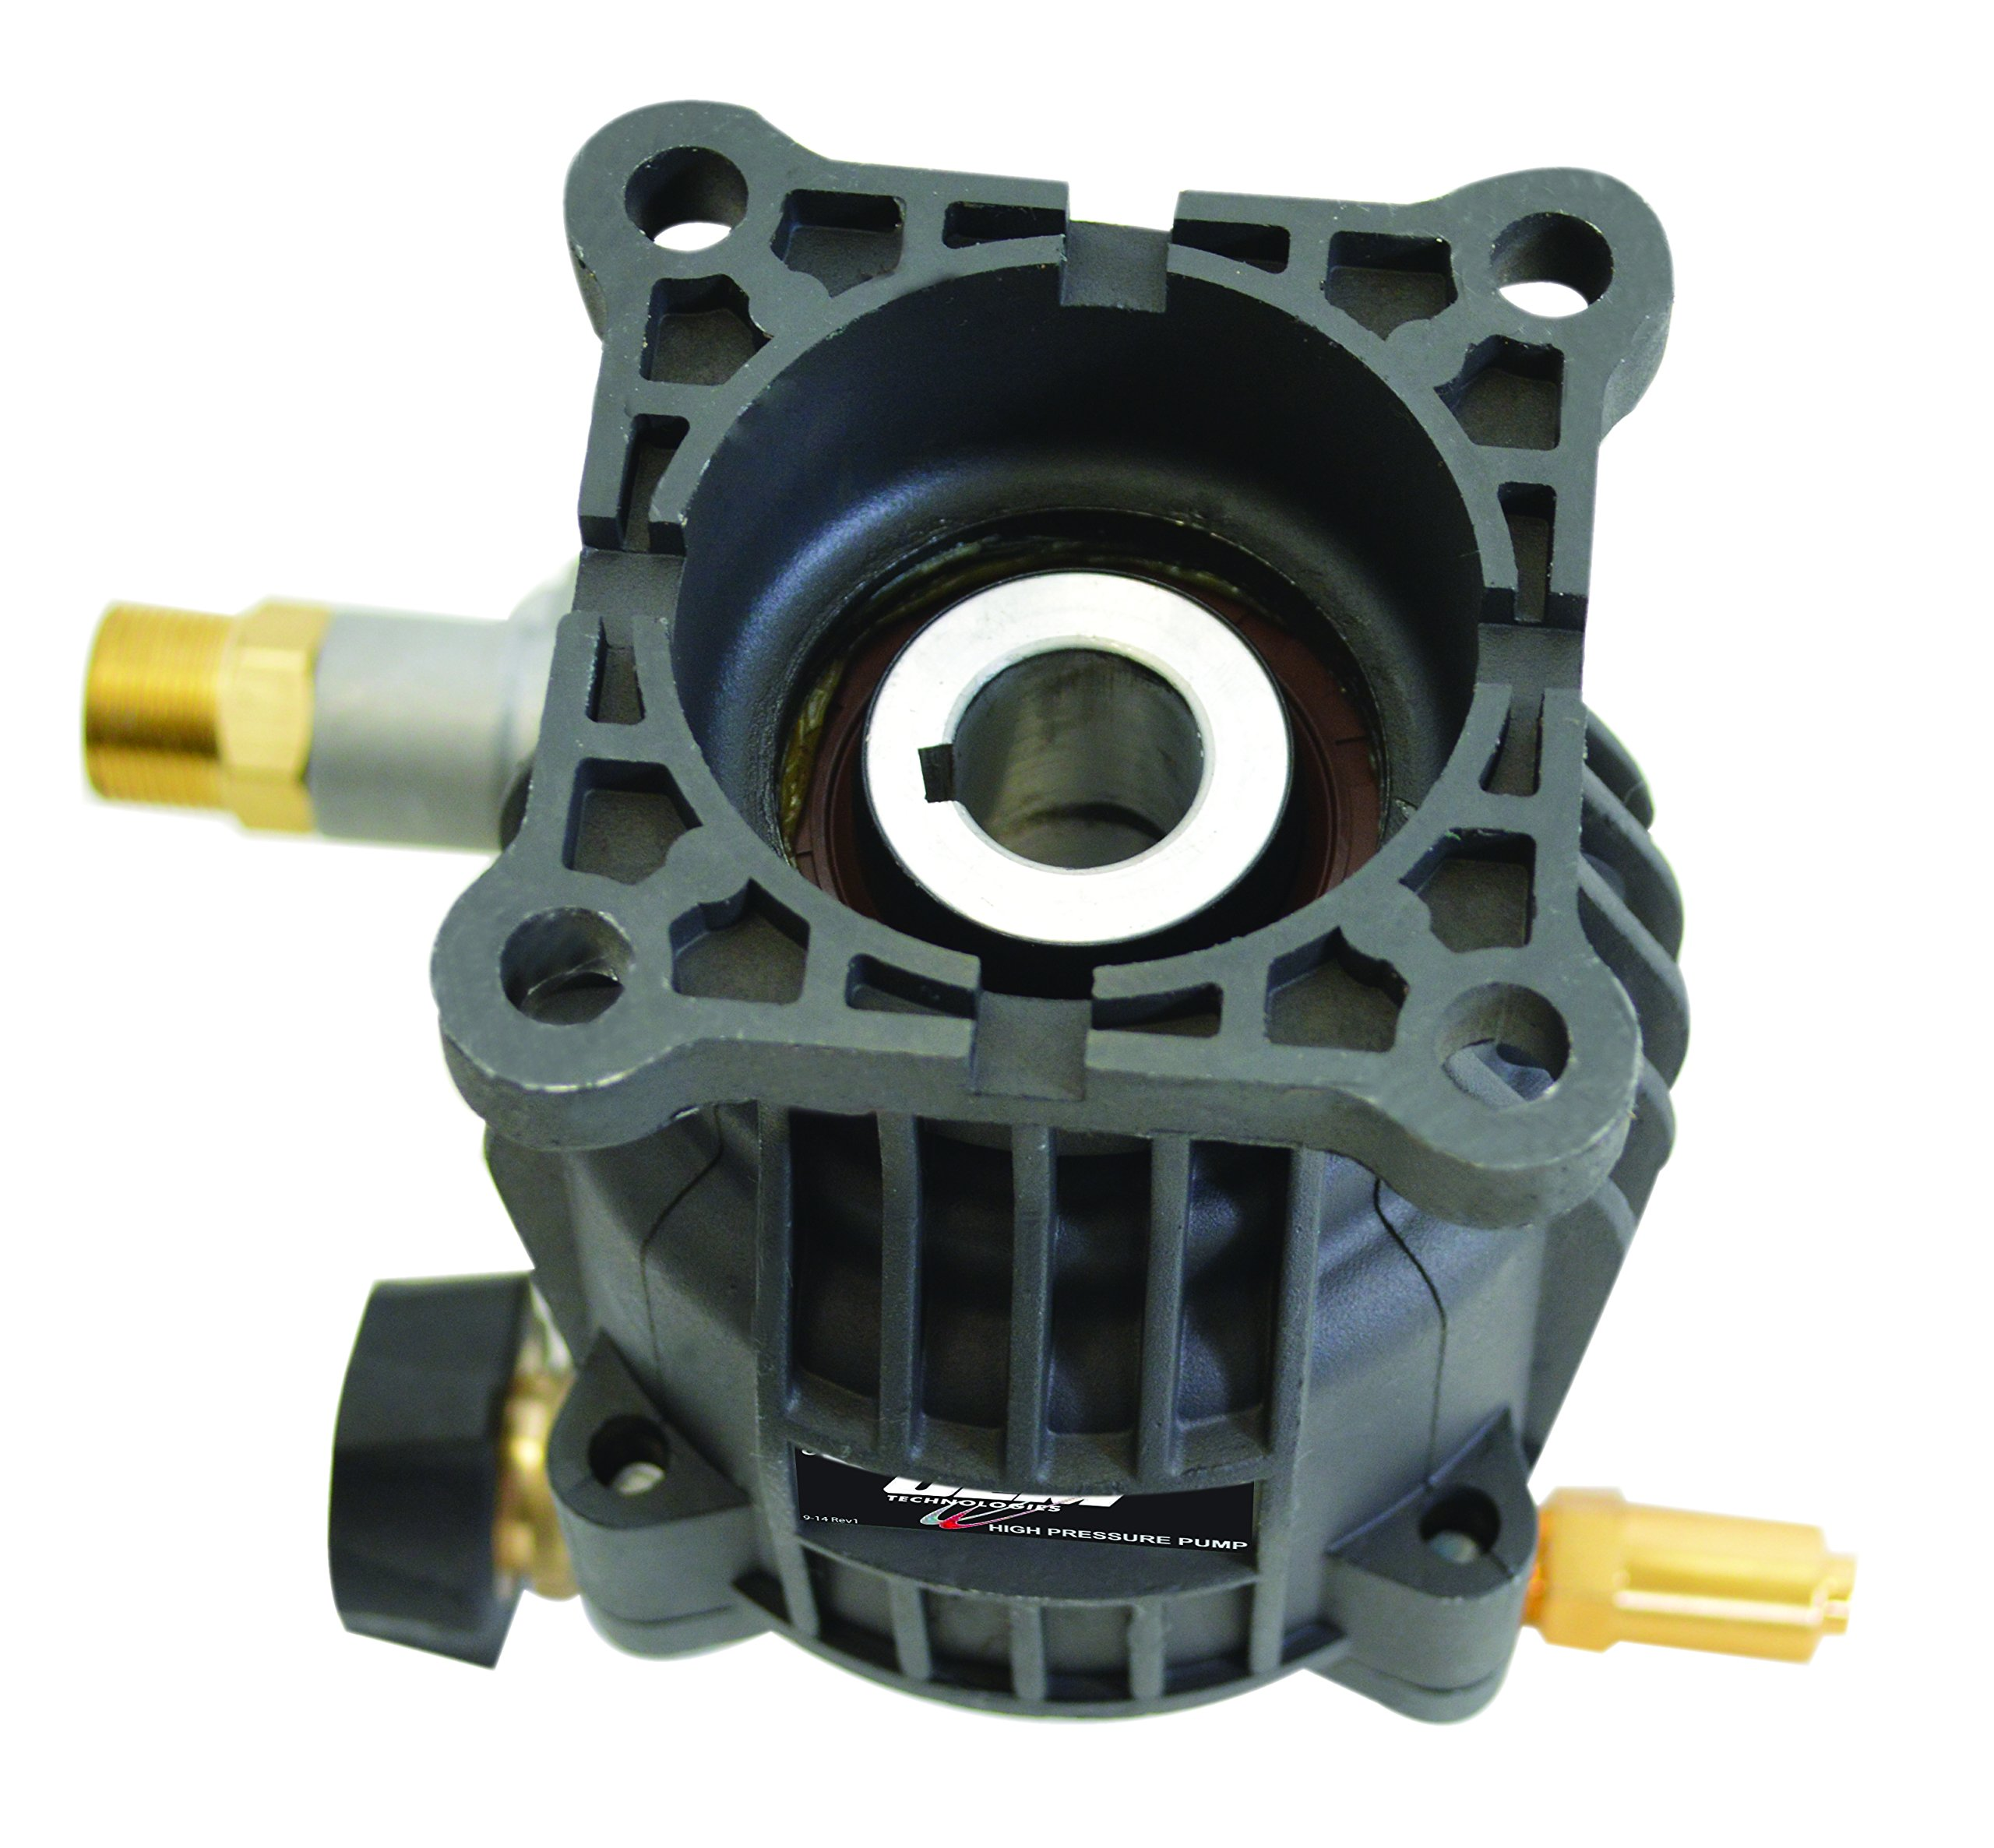 SIMPSON Cleaning 90029 Axial Cam Horizontal Pressure Washer Replacement Pump 8.6CAH12B 3100 PSI @ 2.5 GPM with Brass Head and PowerBoost Technology by Simpson Cleaning (Image #5)